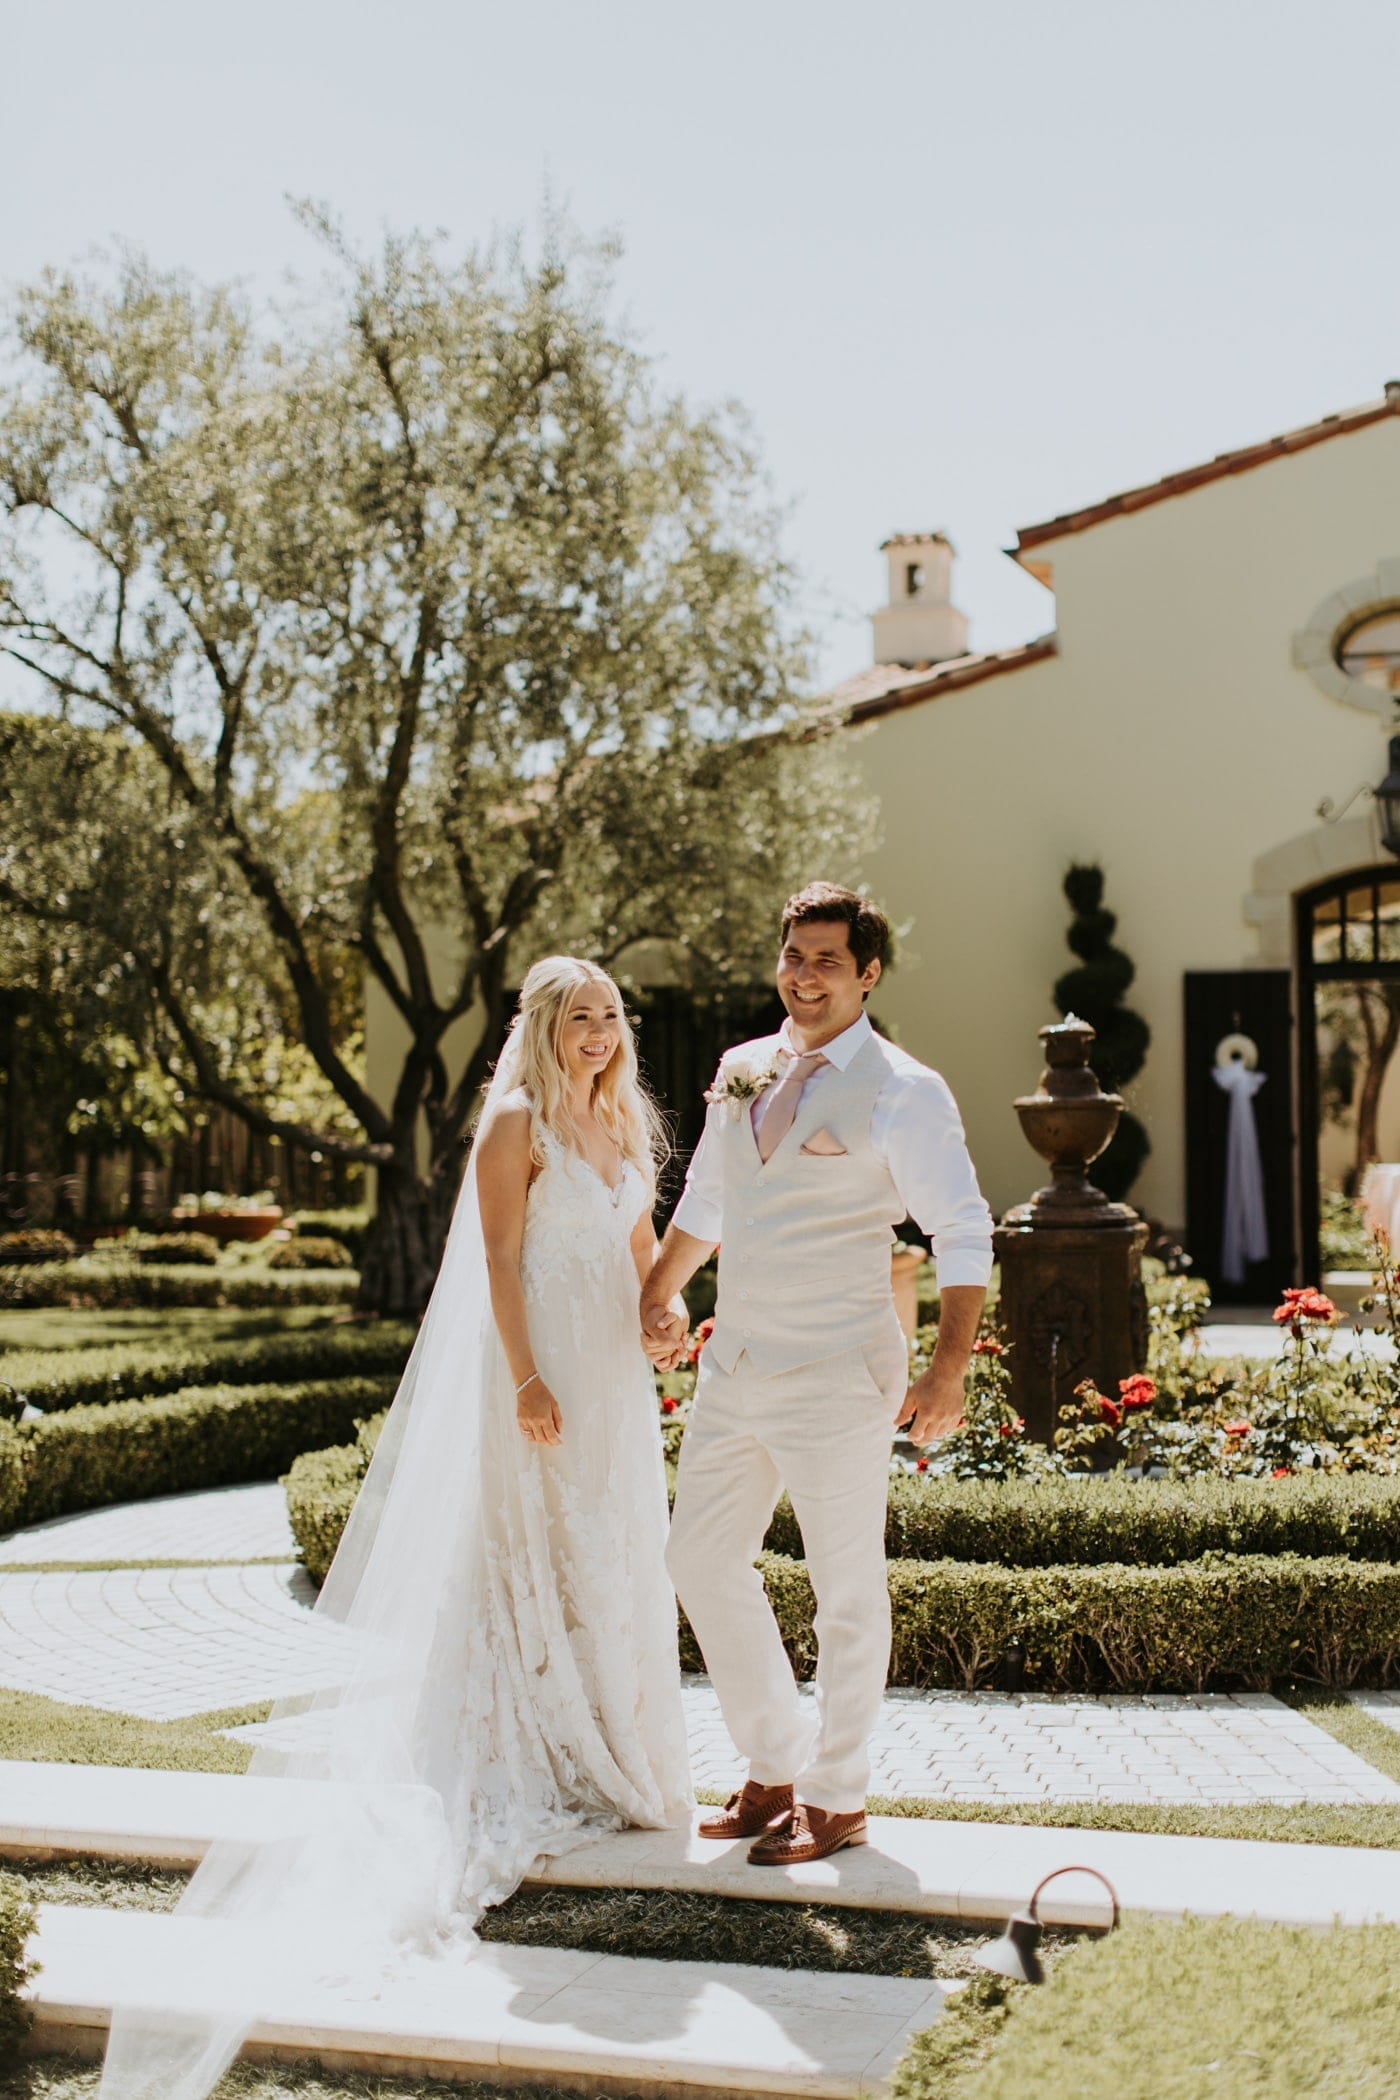 Real Weddings | Vinka Design | Real Brides Wearing Vinka Gowns | Camille and Aaron in the Californian sun with dress and veil displayed smilin